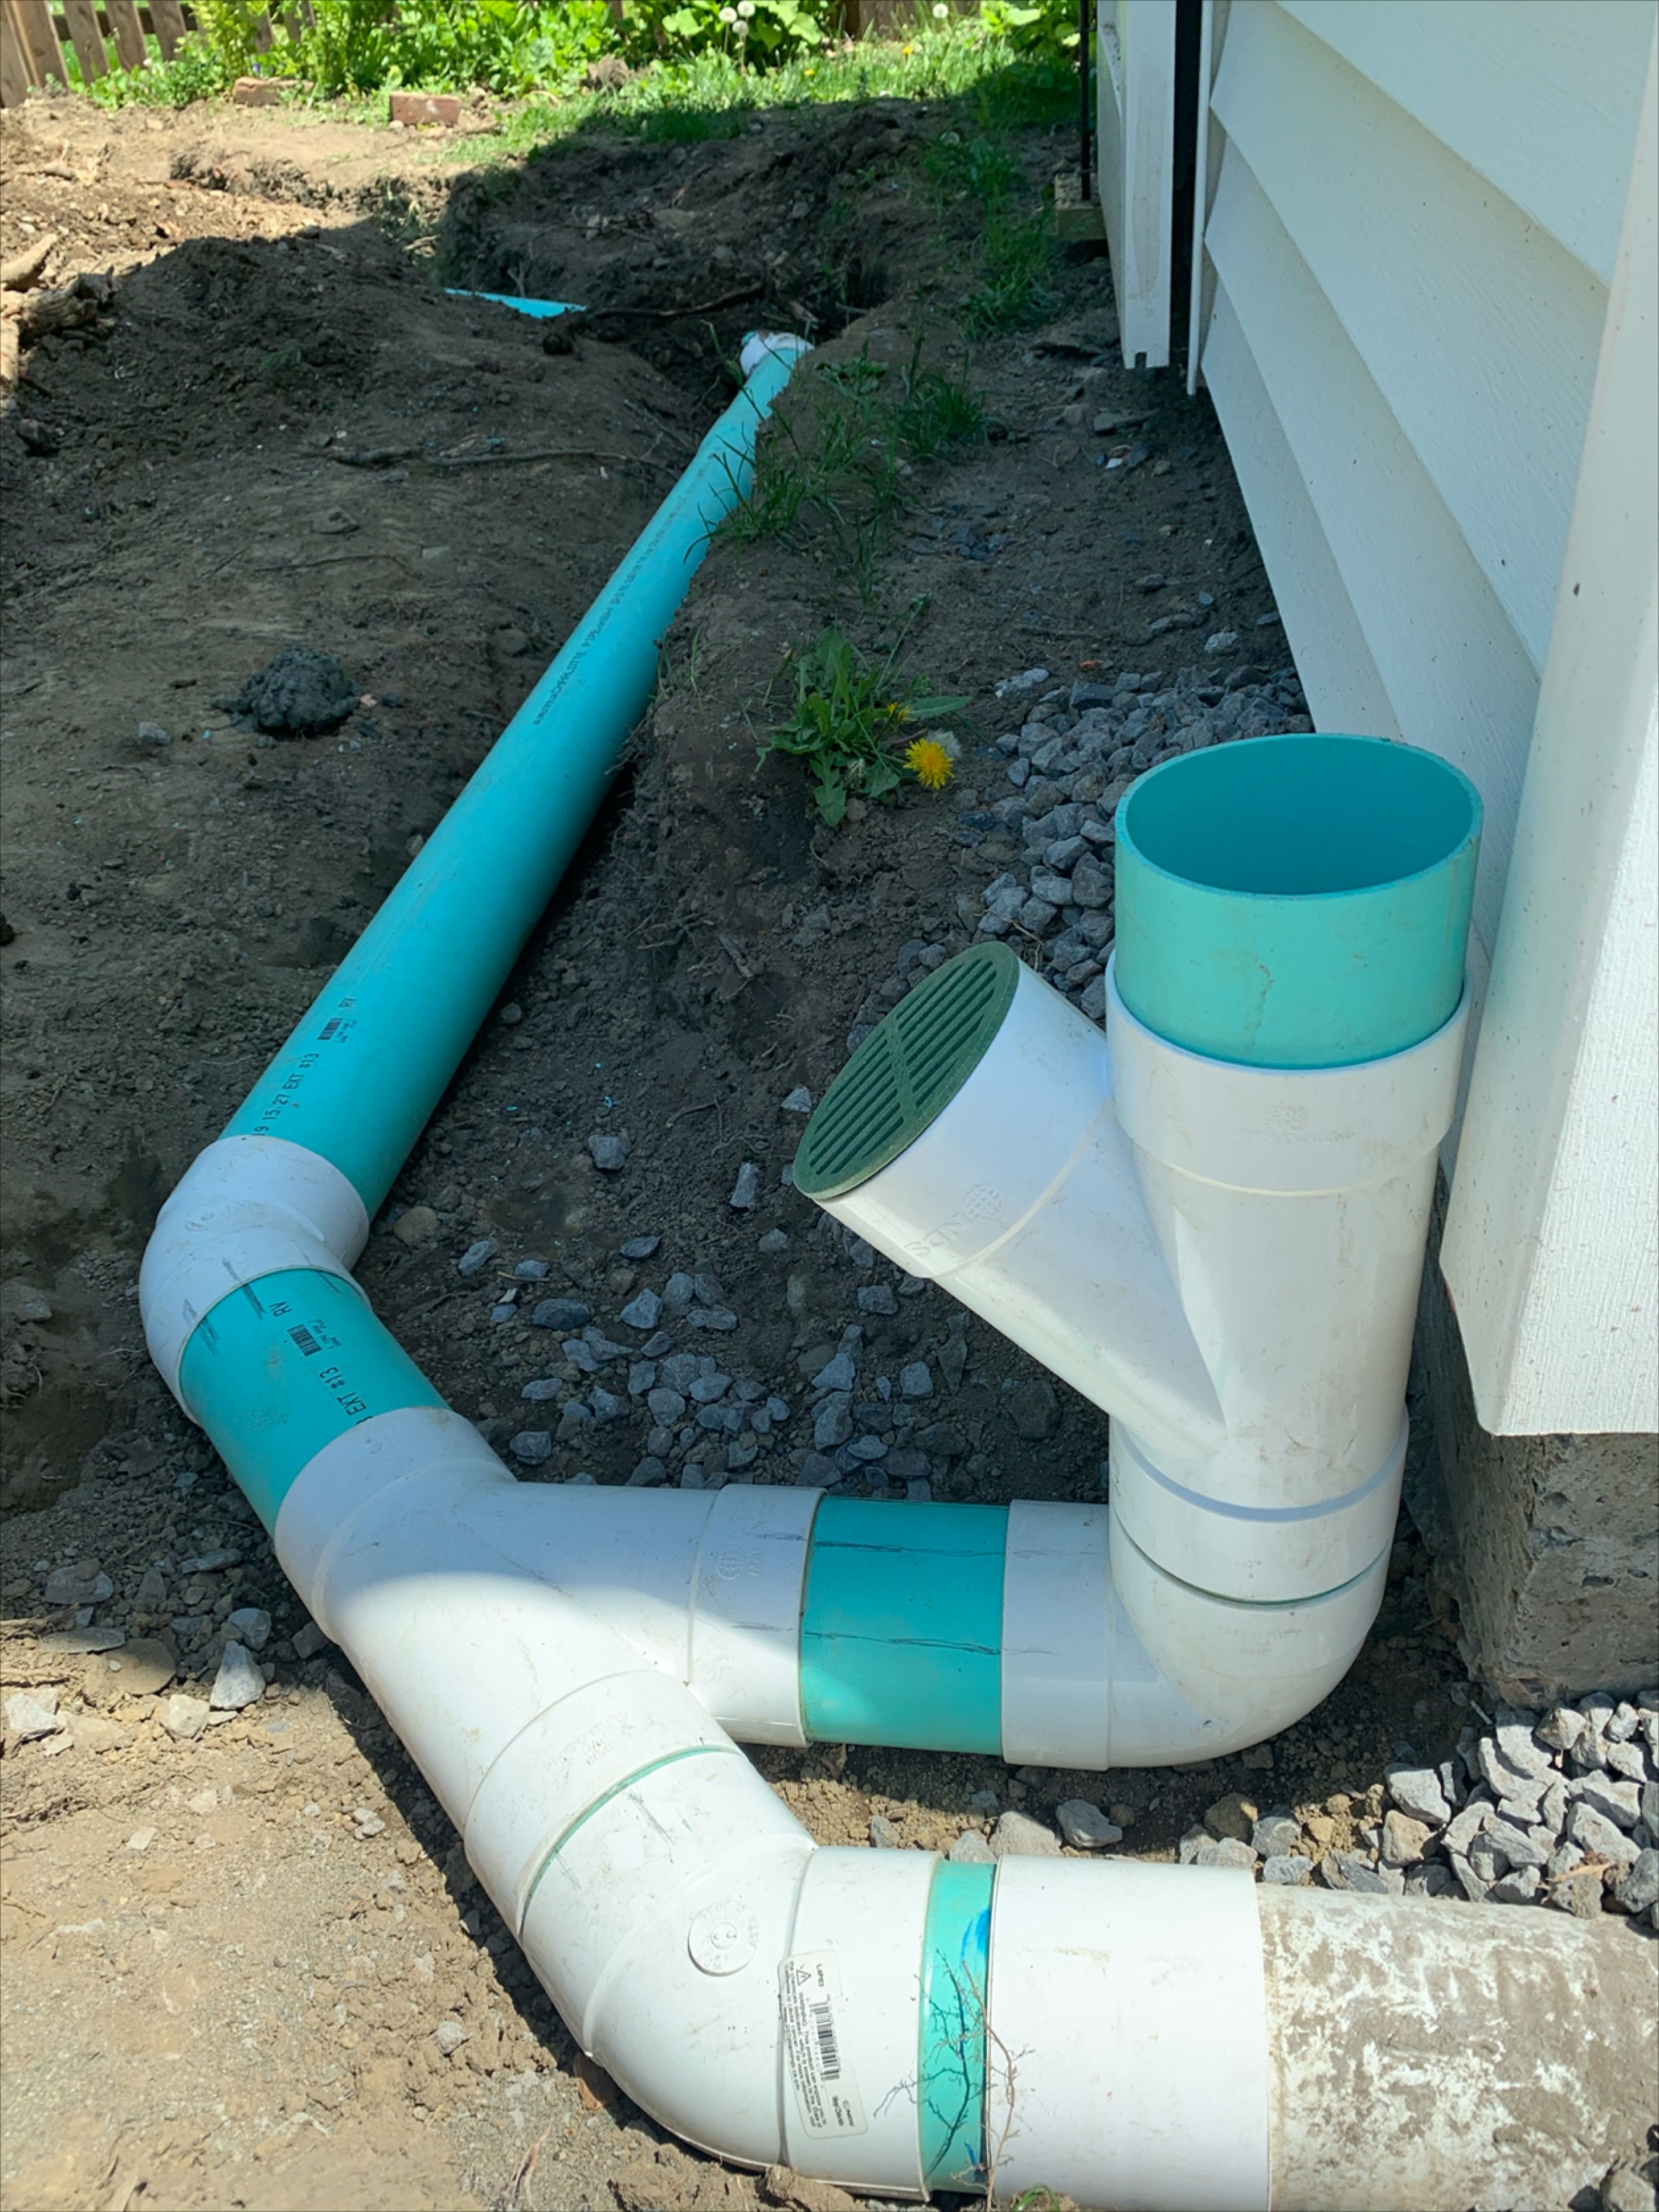 Underground Gutter Downspout Water Drainage Install Piping Rainwater Away From Foundation Walls In 2020 Drainage Underground Drainage Downspout Drainage